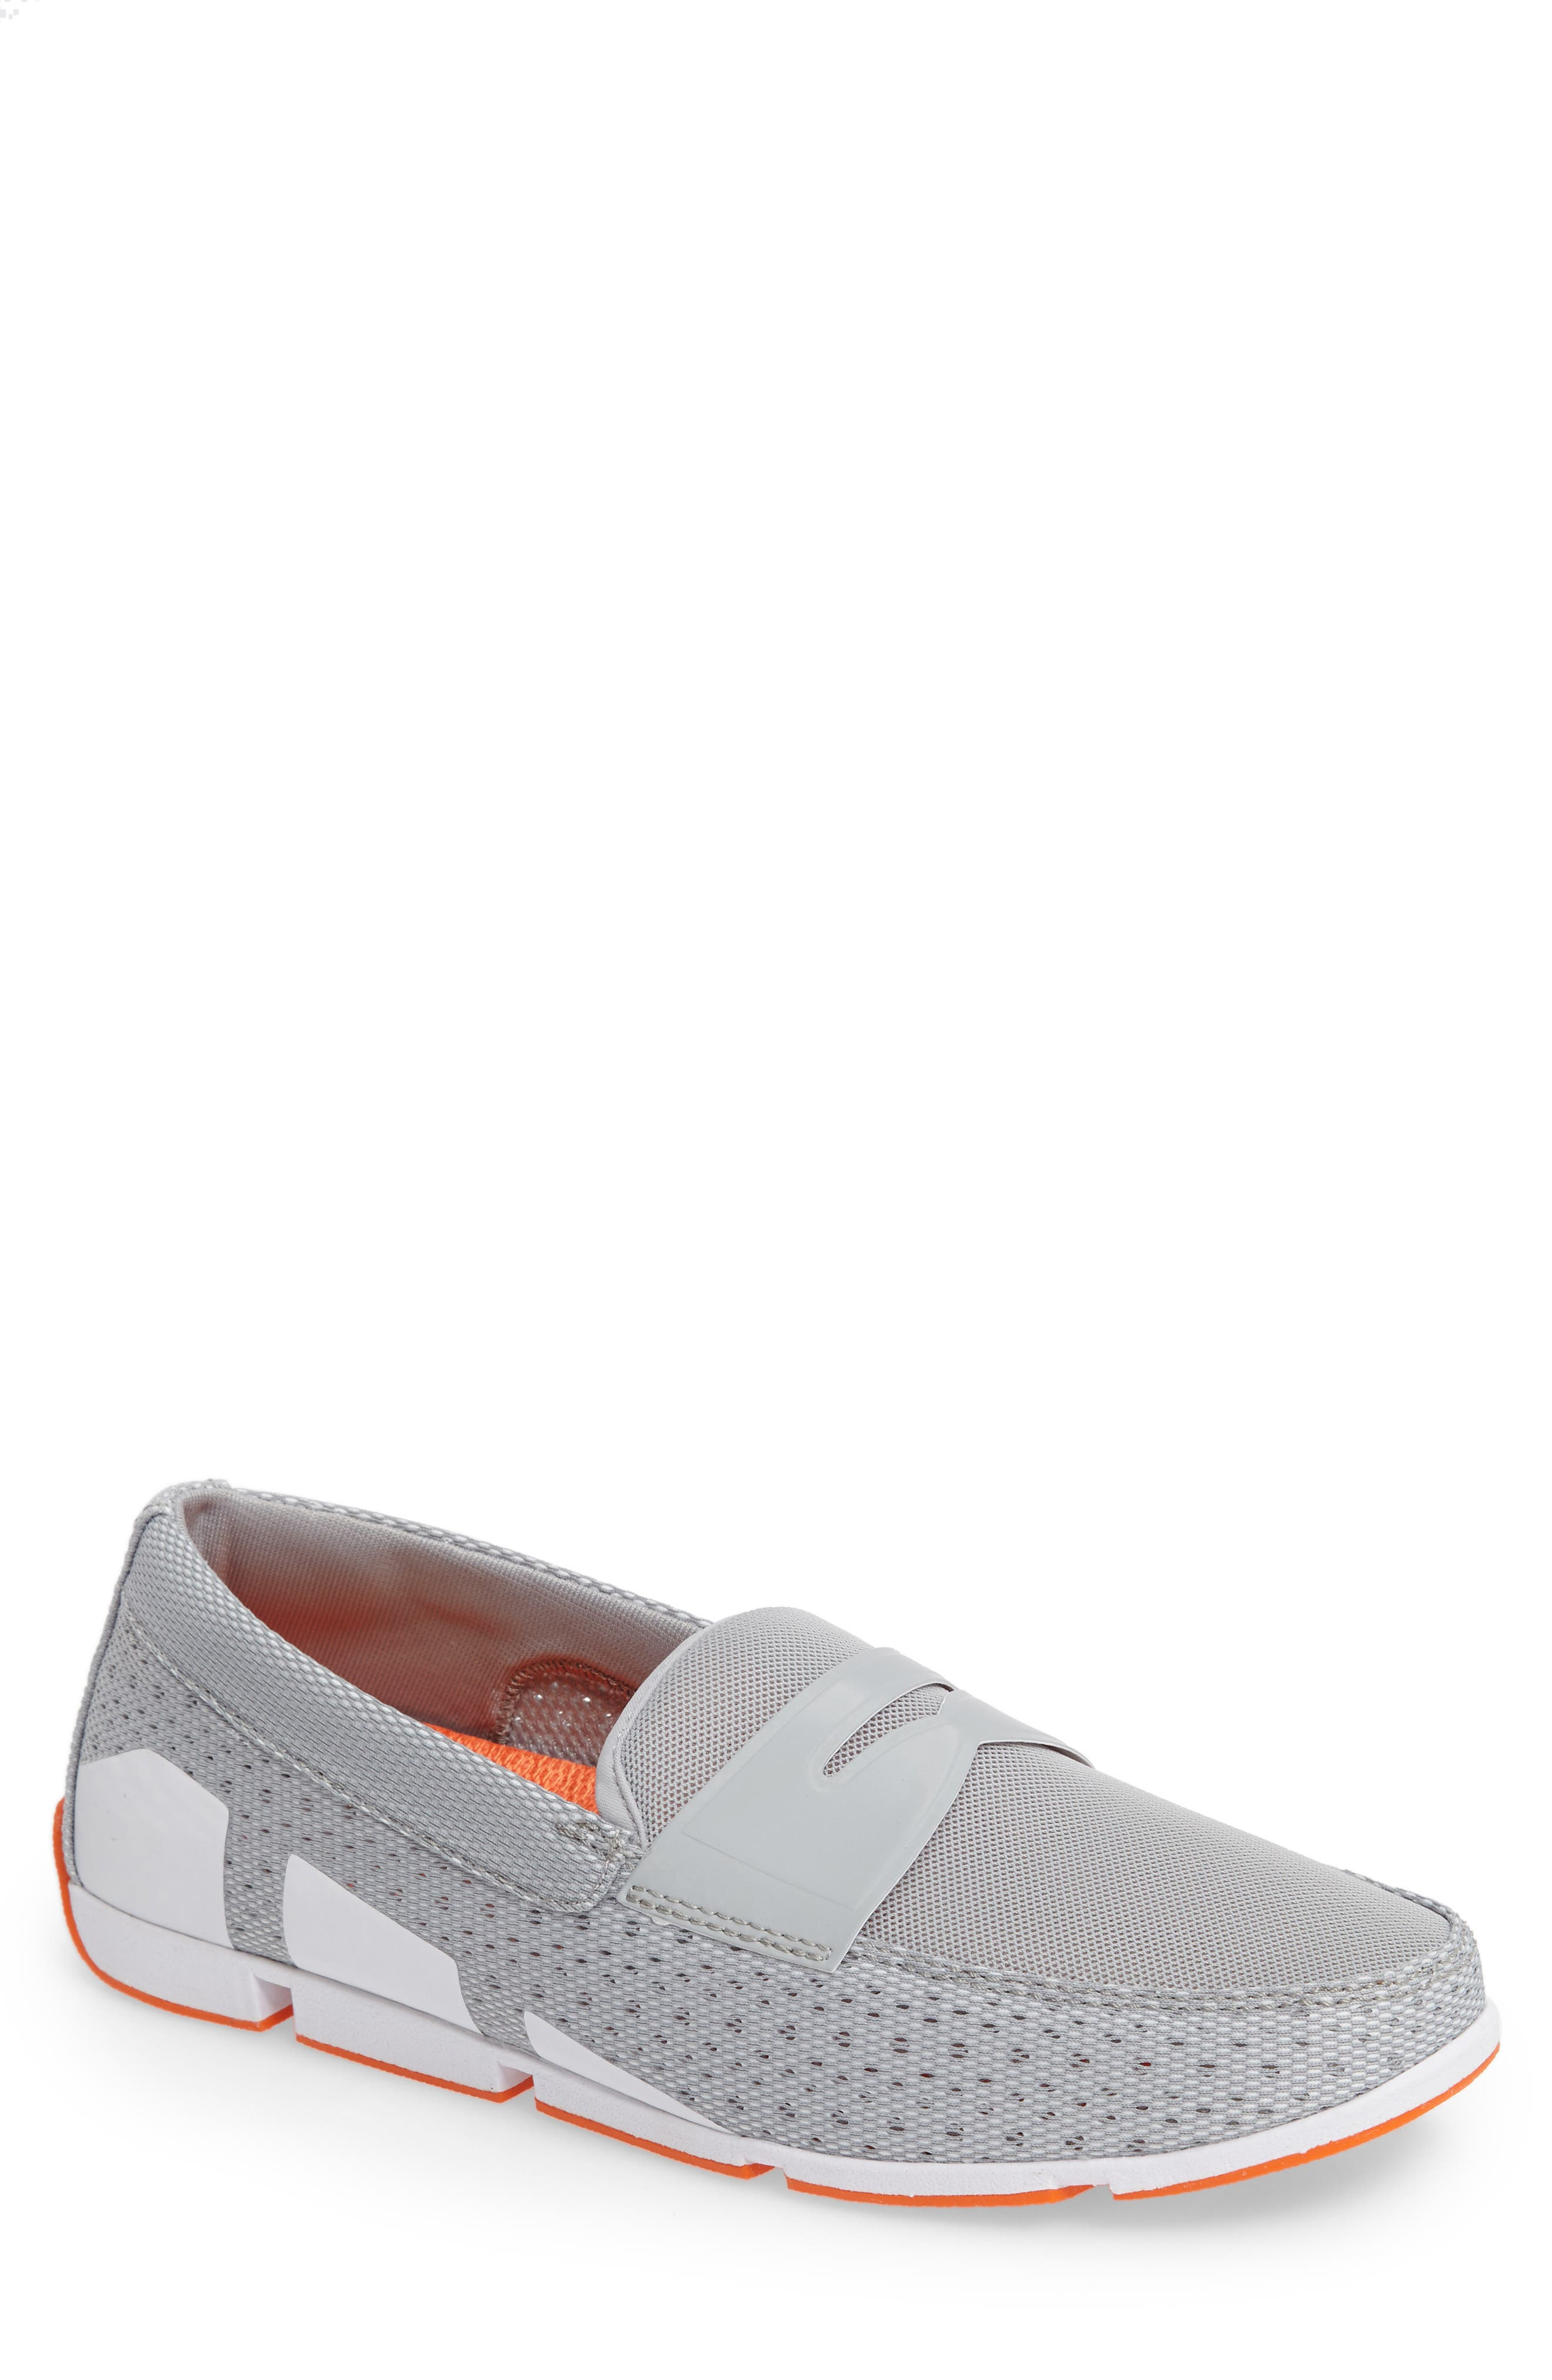 Breeze Penny Loafer,                             Main thumbnail 3, color,